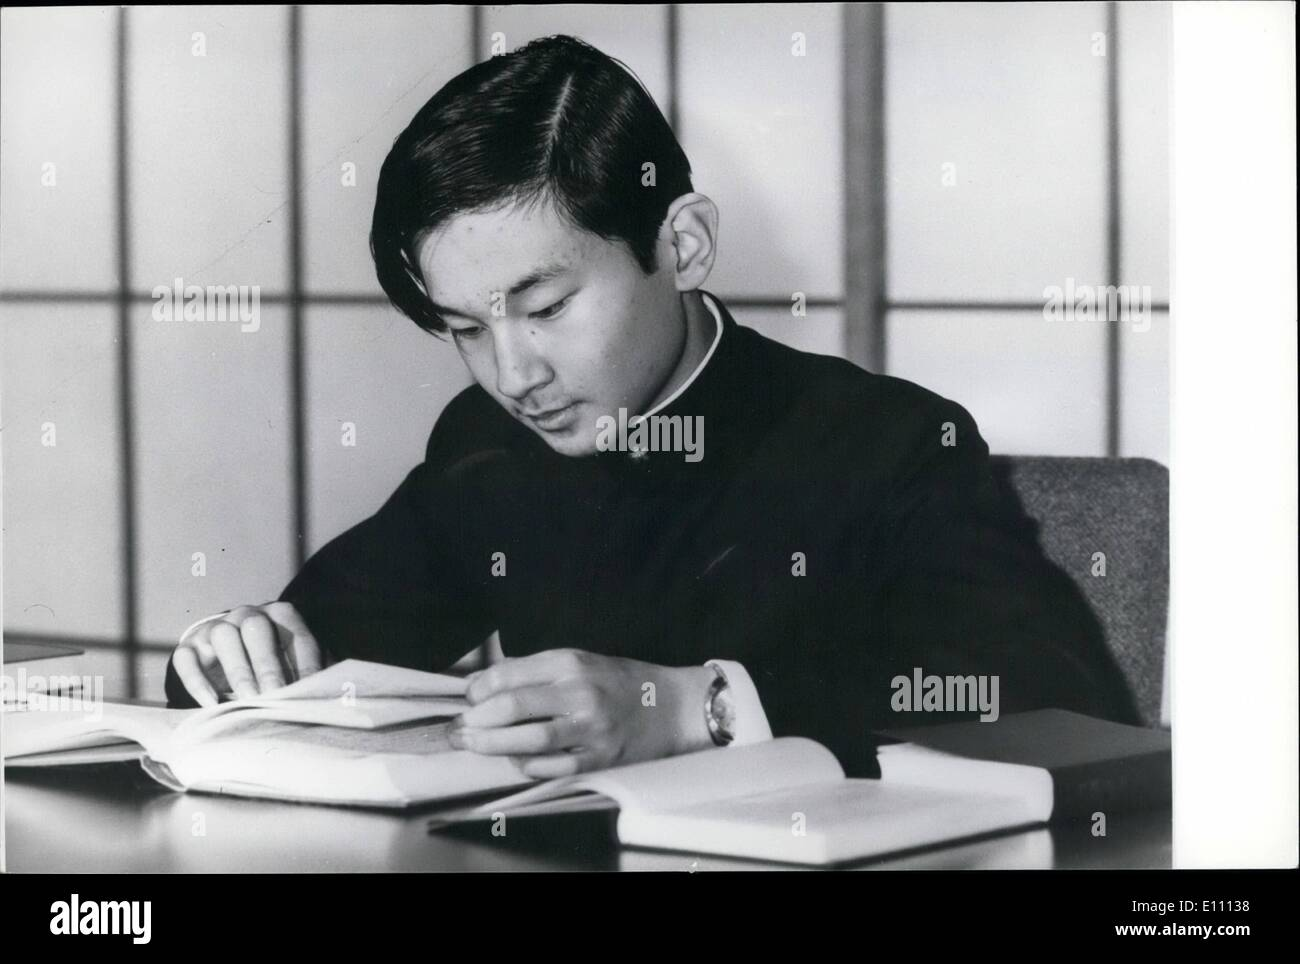 Mar. 03, 1975 - 15th birthday for Japanese Imperial Prince. Prince Hiro, eldest son of Crown Prince Akihito, and Princess Michiko of Japan who has just celebrated his 15th birthday in Tokyo, is shown studying his lessons at the Togu Palace. - Stock Image